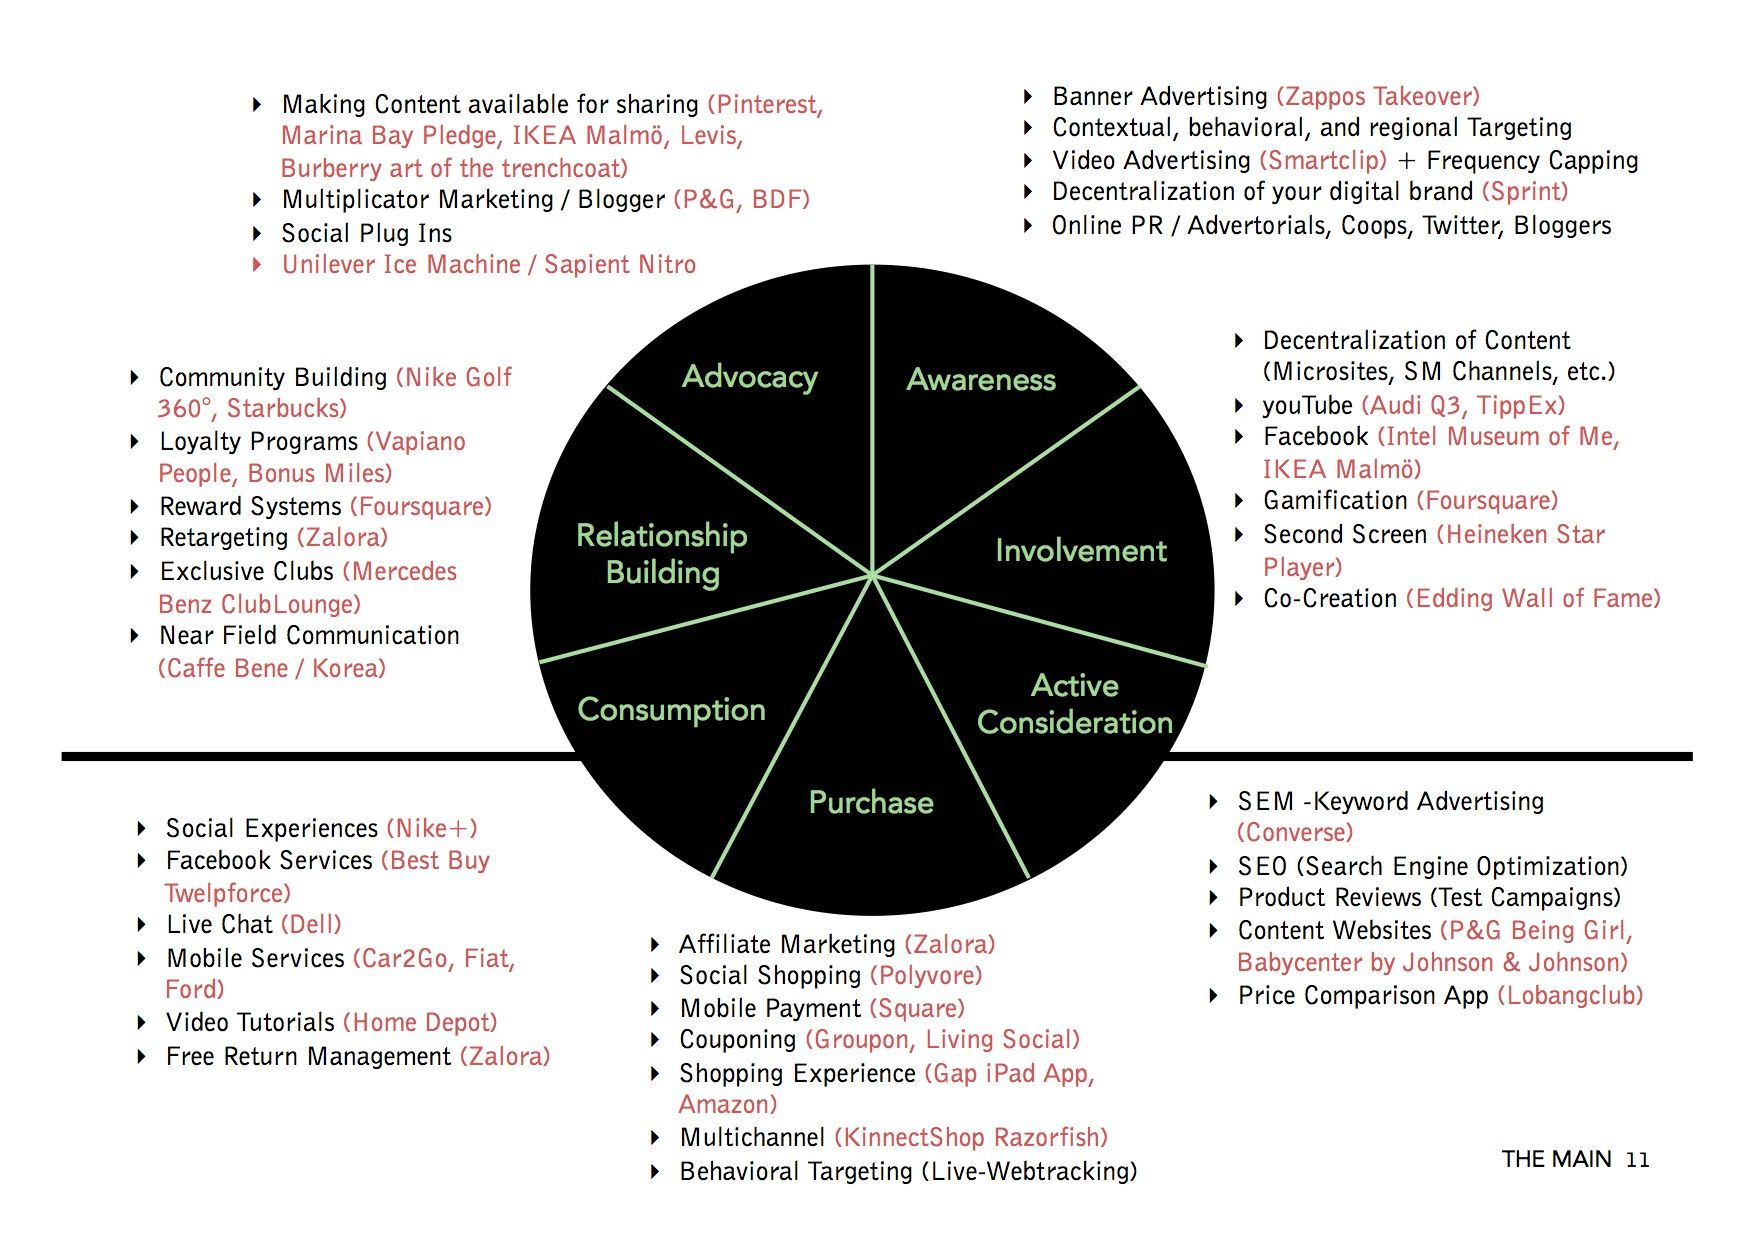 Here S An Overview Of Brands Using Digital Channels For Different